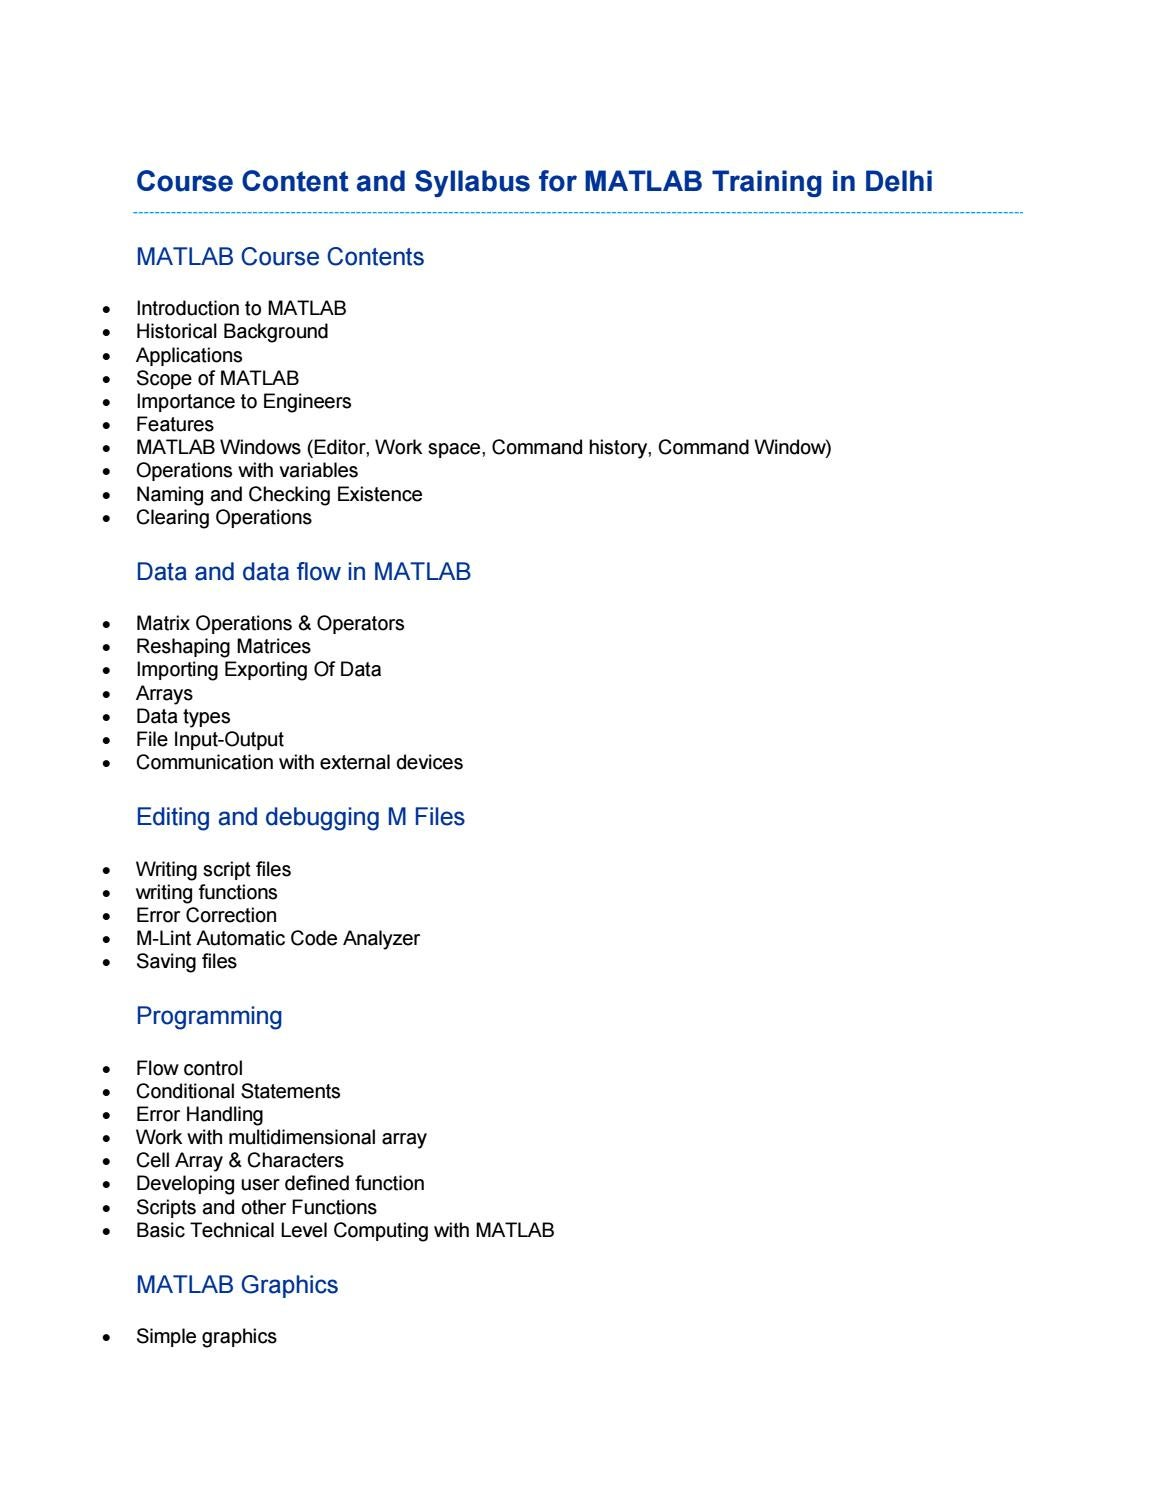 Course Content and Syllabus for MATLAB Training in Delhi by Aptron